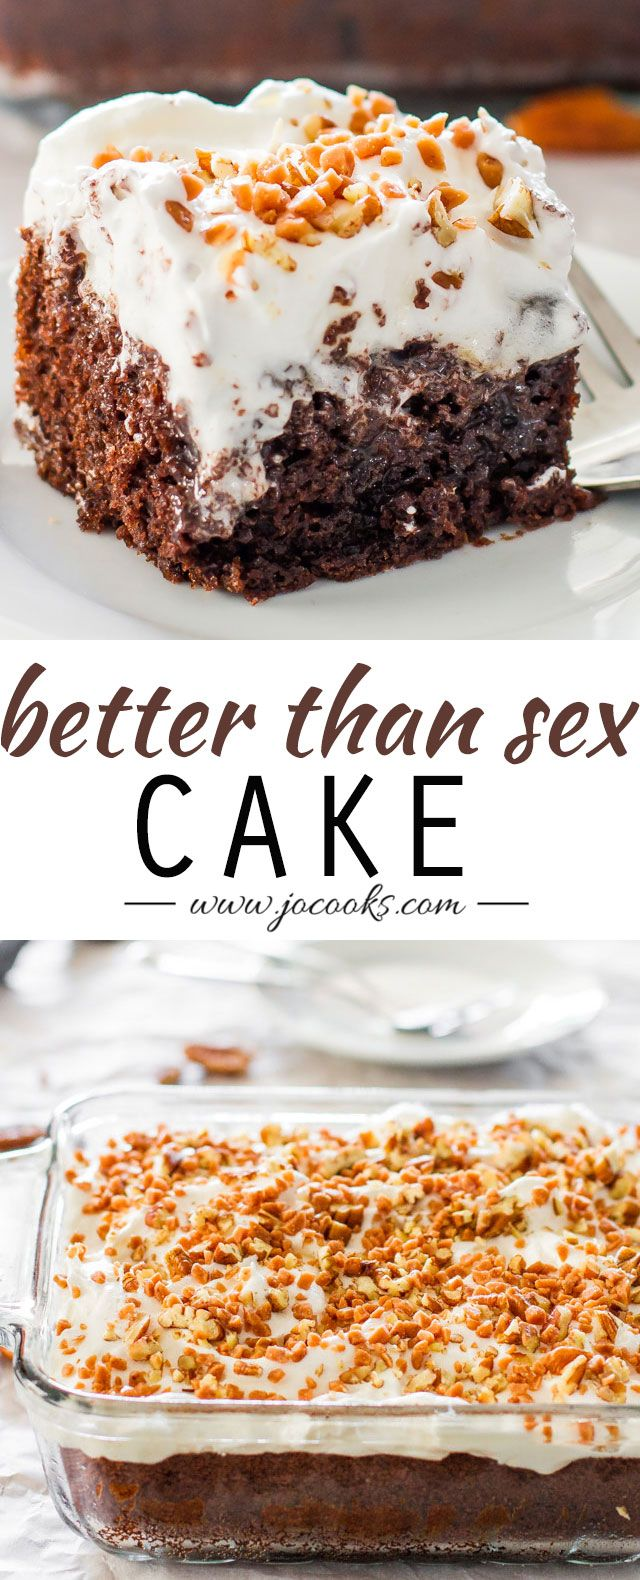 duncan hines better than sex cake recipe in Manchester